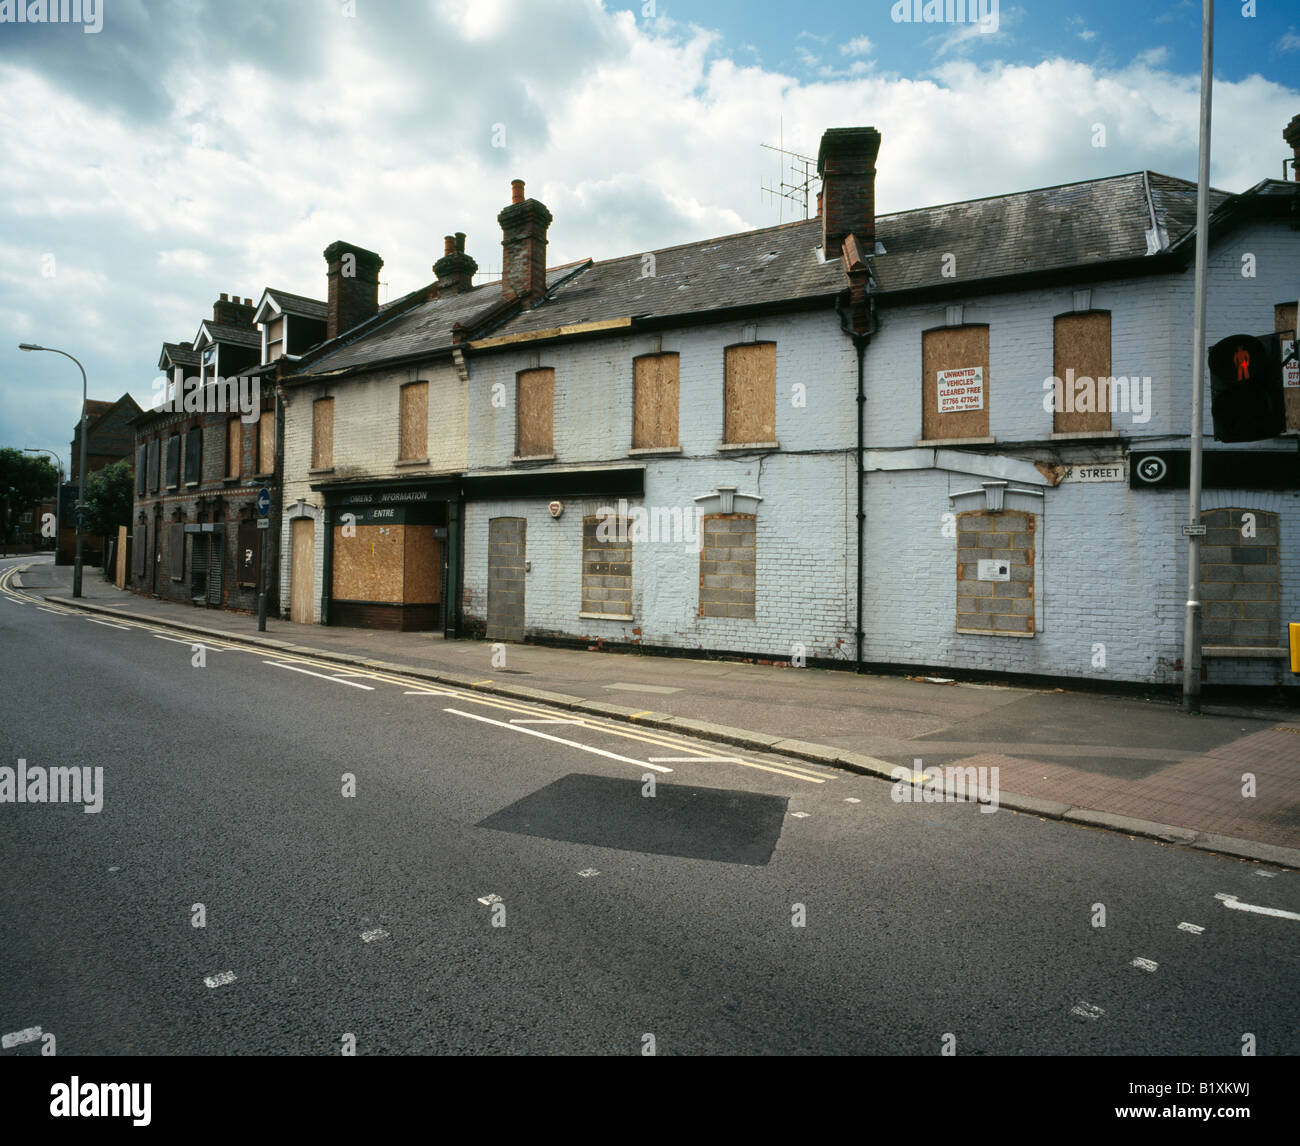 Derelict houses in Silver Street, Reading city, Berkshire, England, UK. - Stock Image